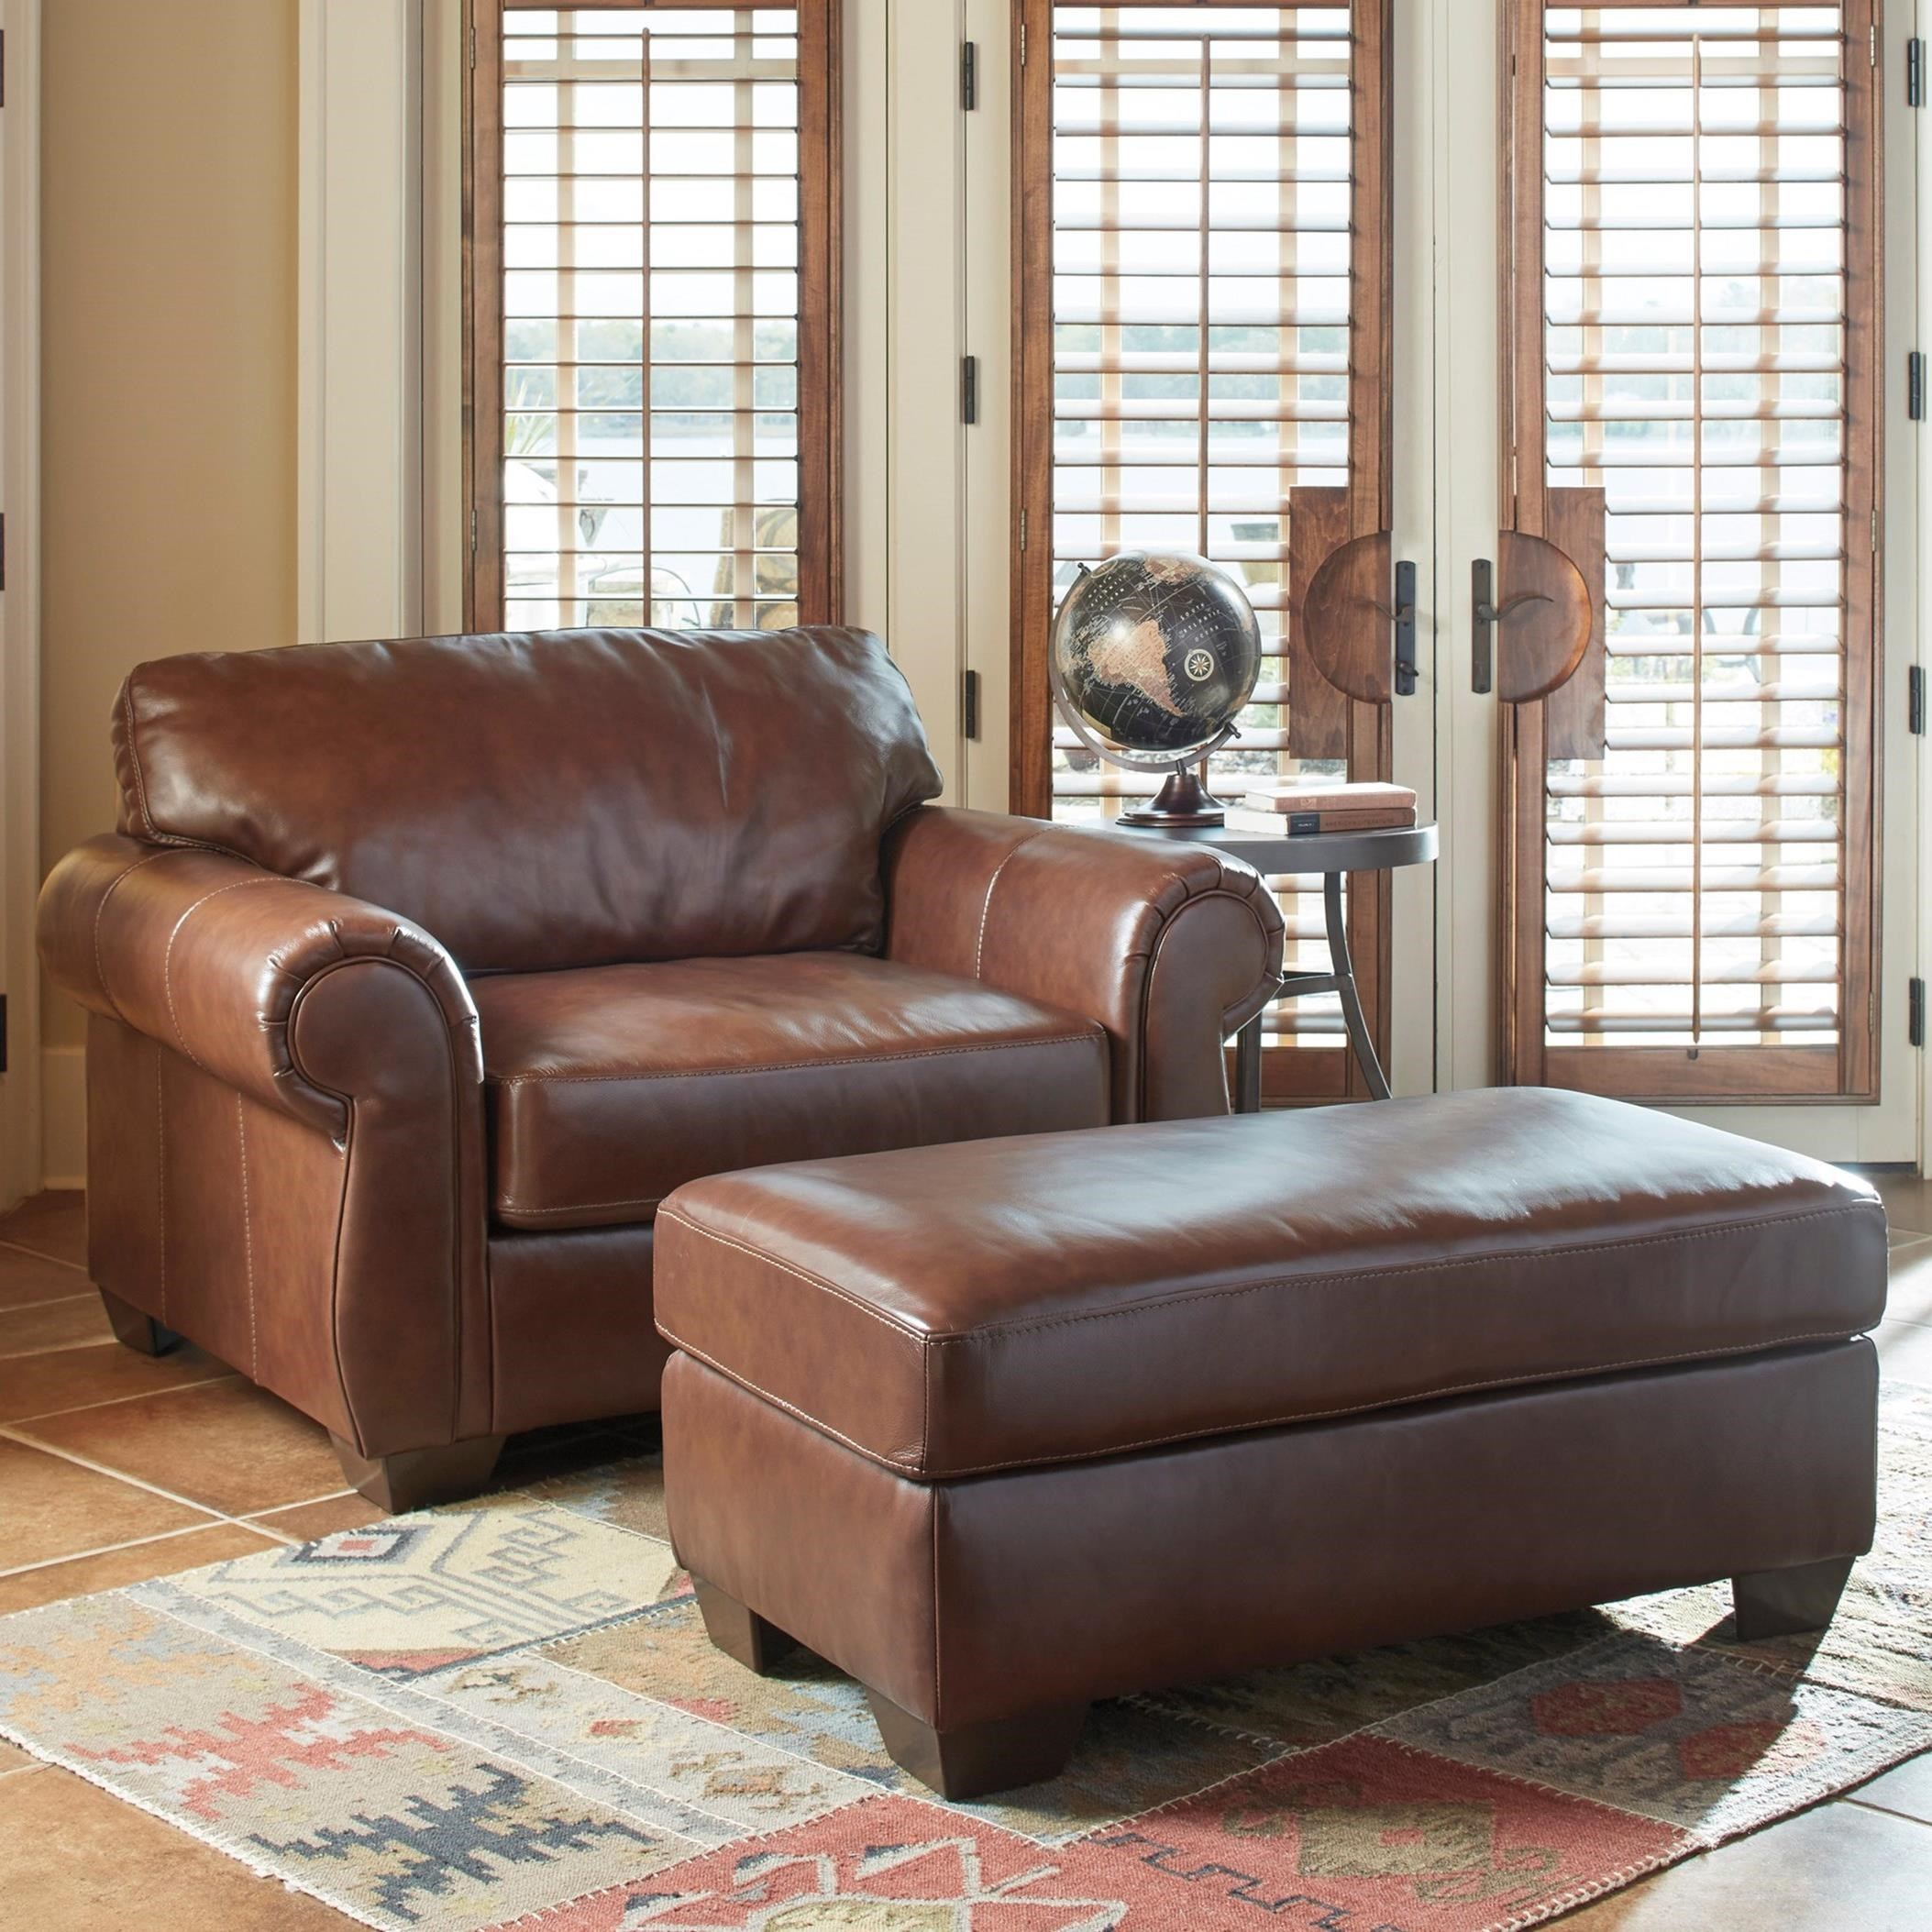 Elegant Signature Design By Ashley Lugoro Leather Match Chair And A Half U0026 Ottoman